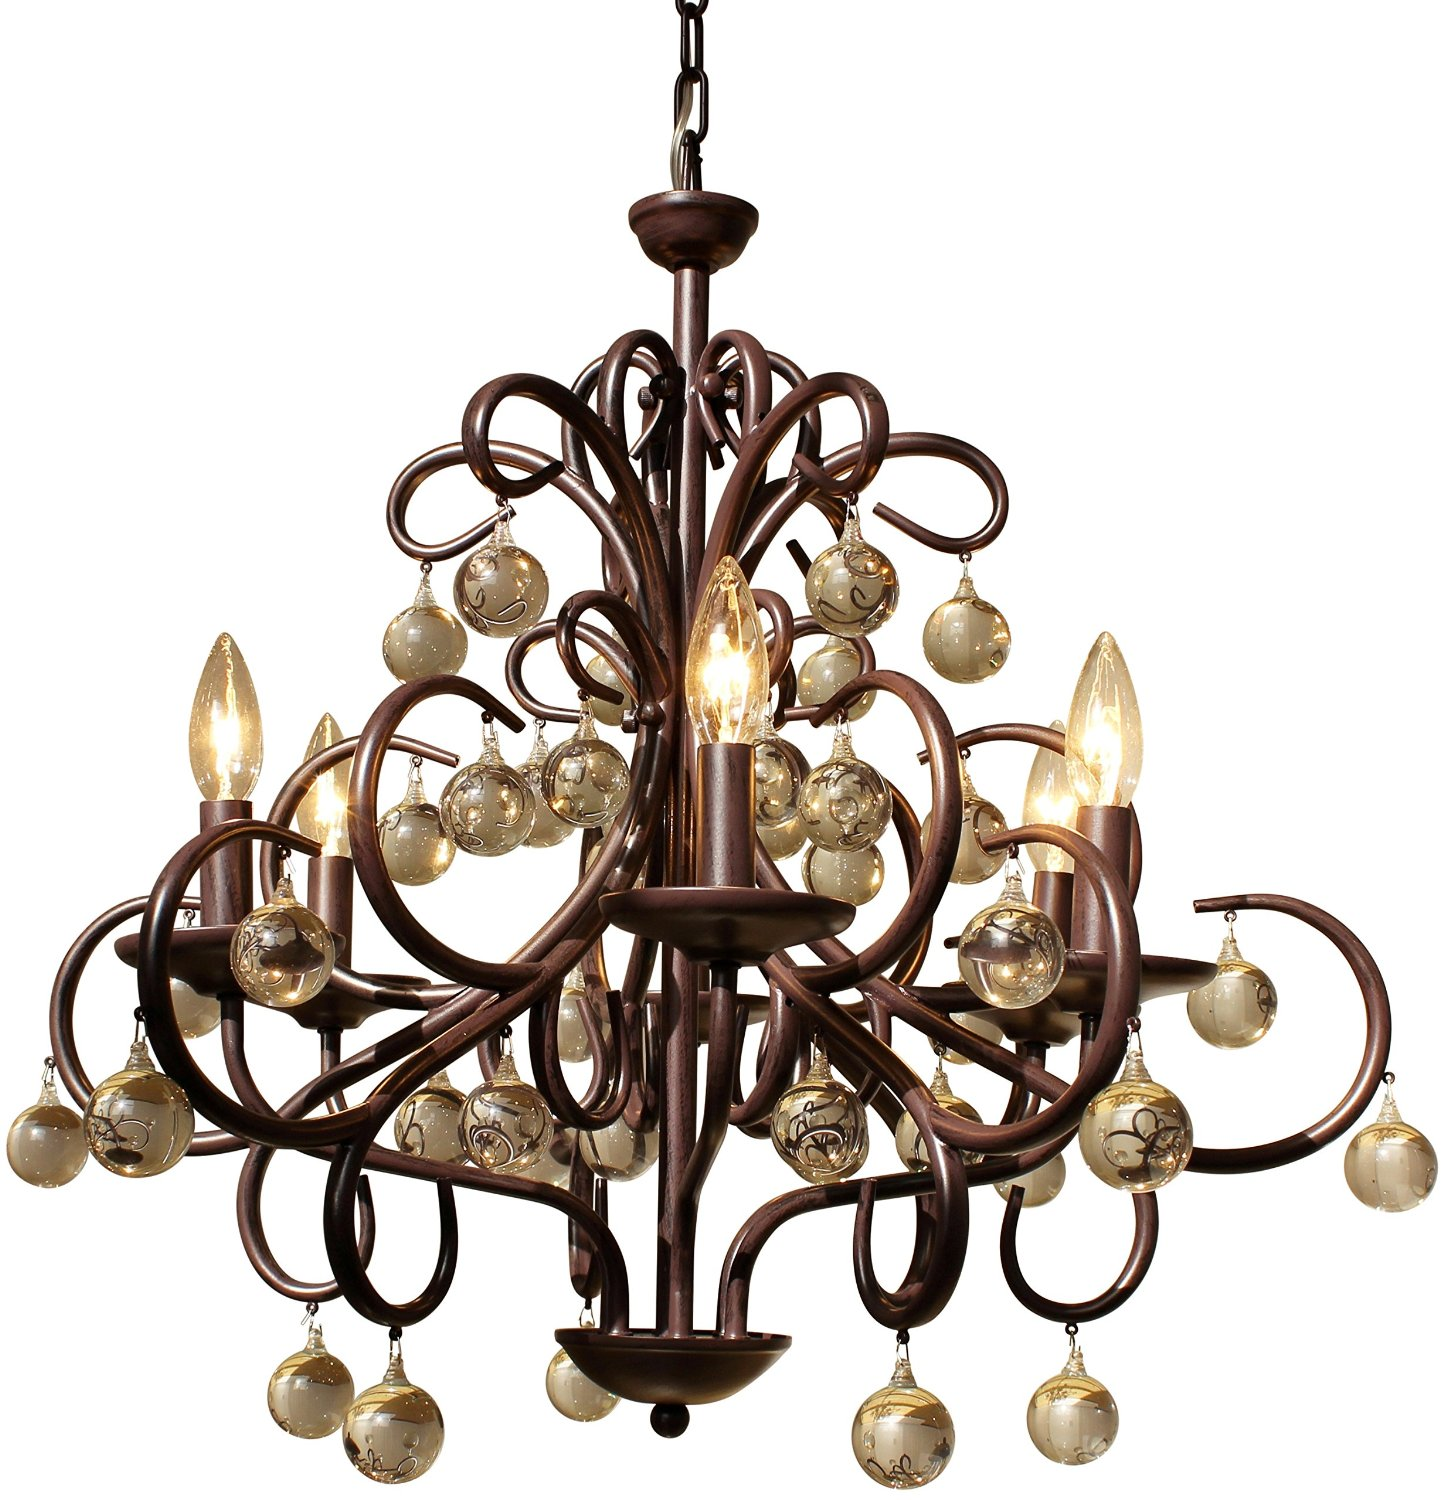 Pottery Barn Bellora Chandelier Reviews: Cooking Vegan Family Dinners Every Day